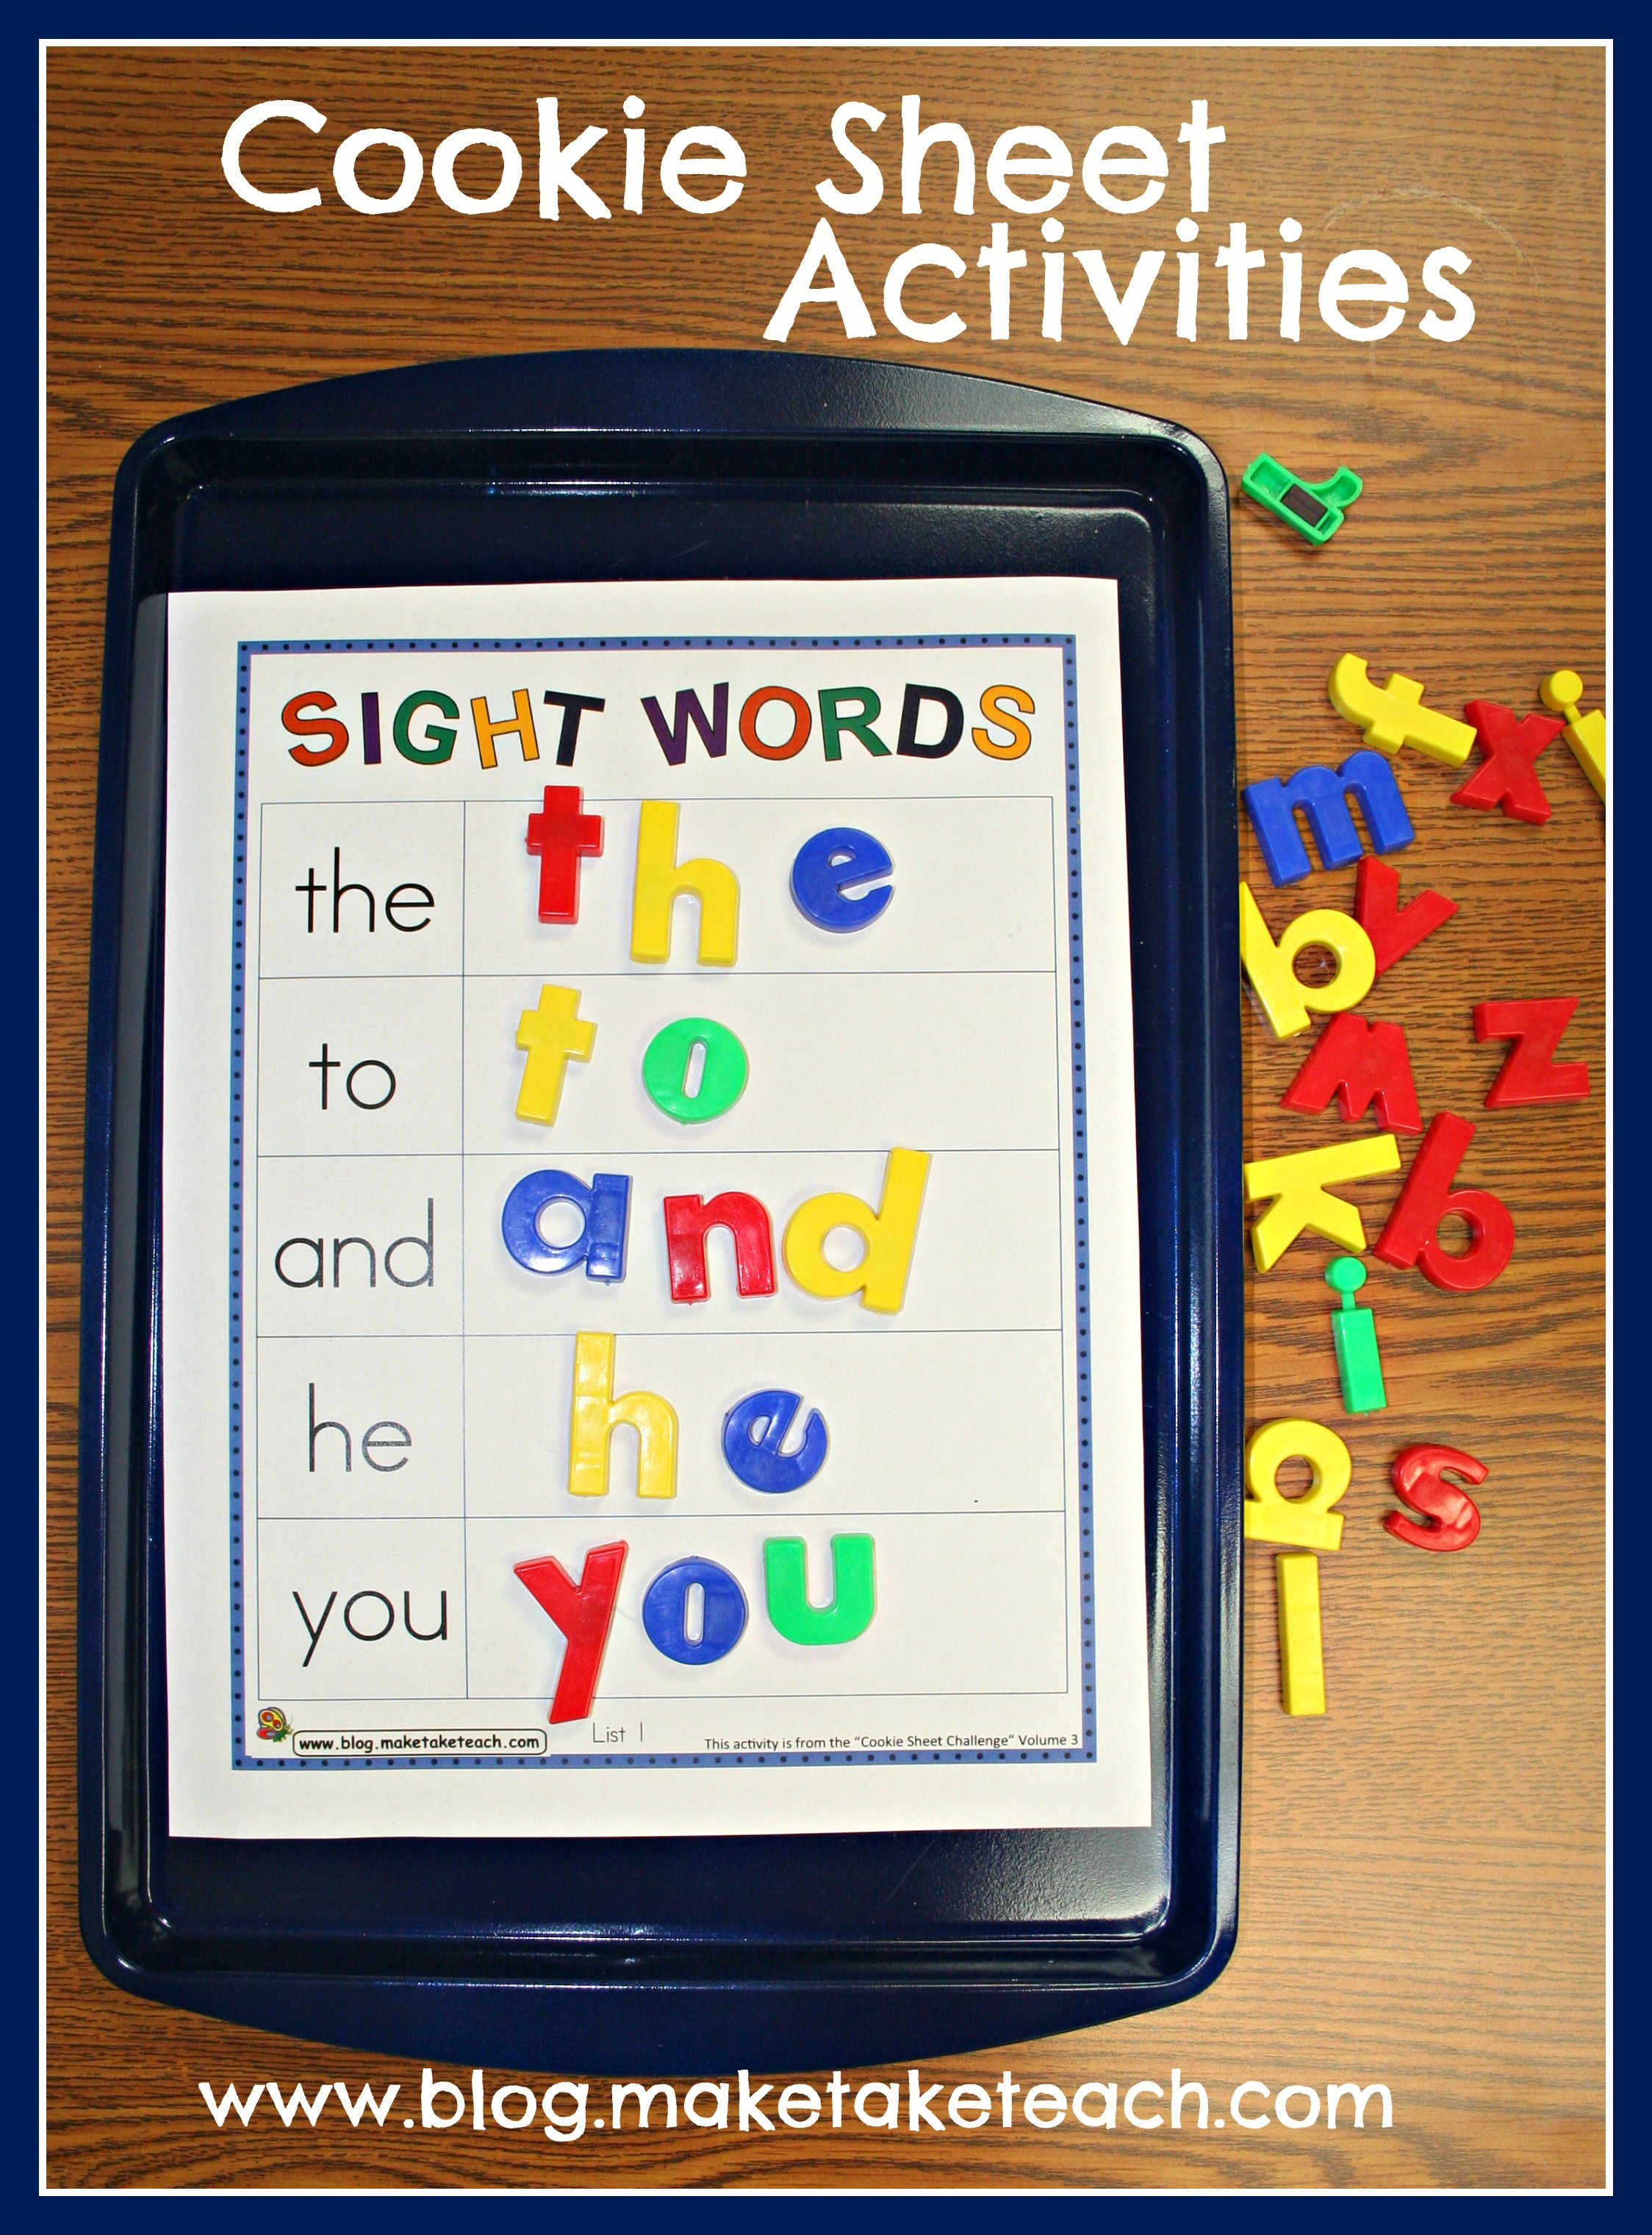 Sight Word Worksheet New 550 Sight Words Activities Sheet